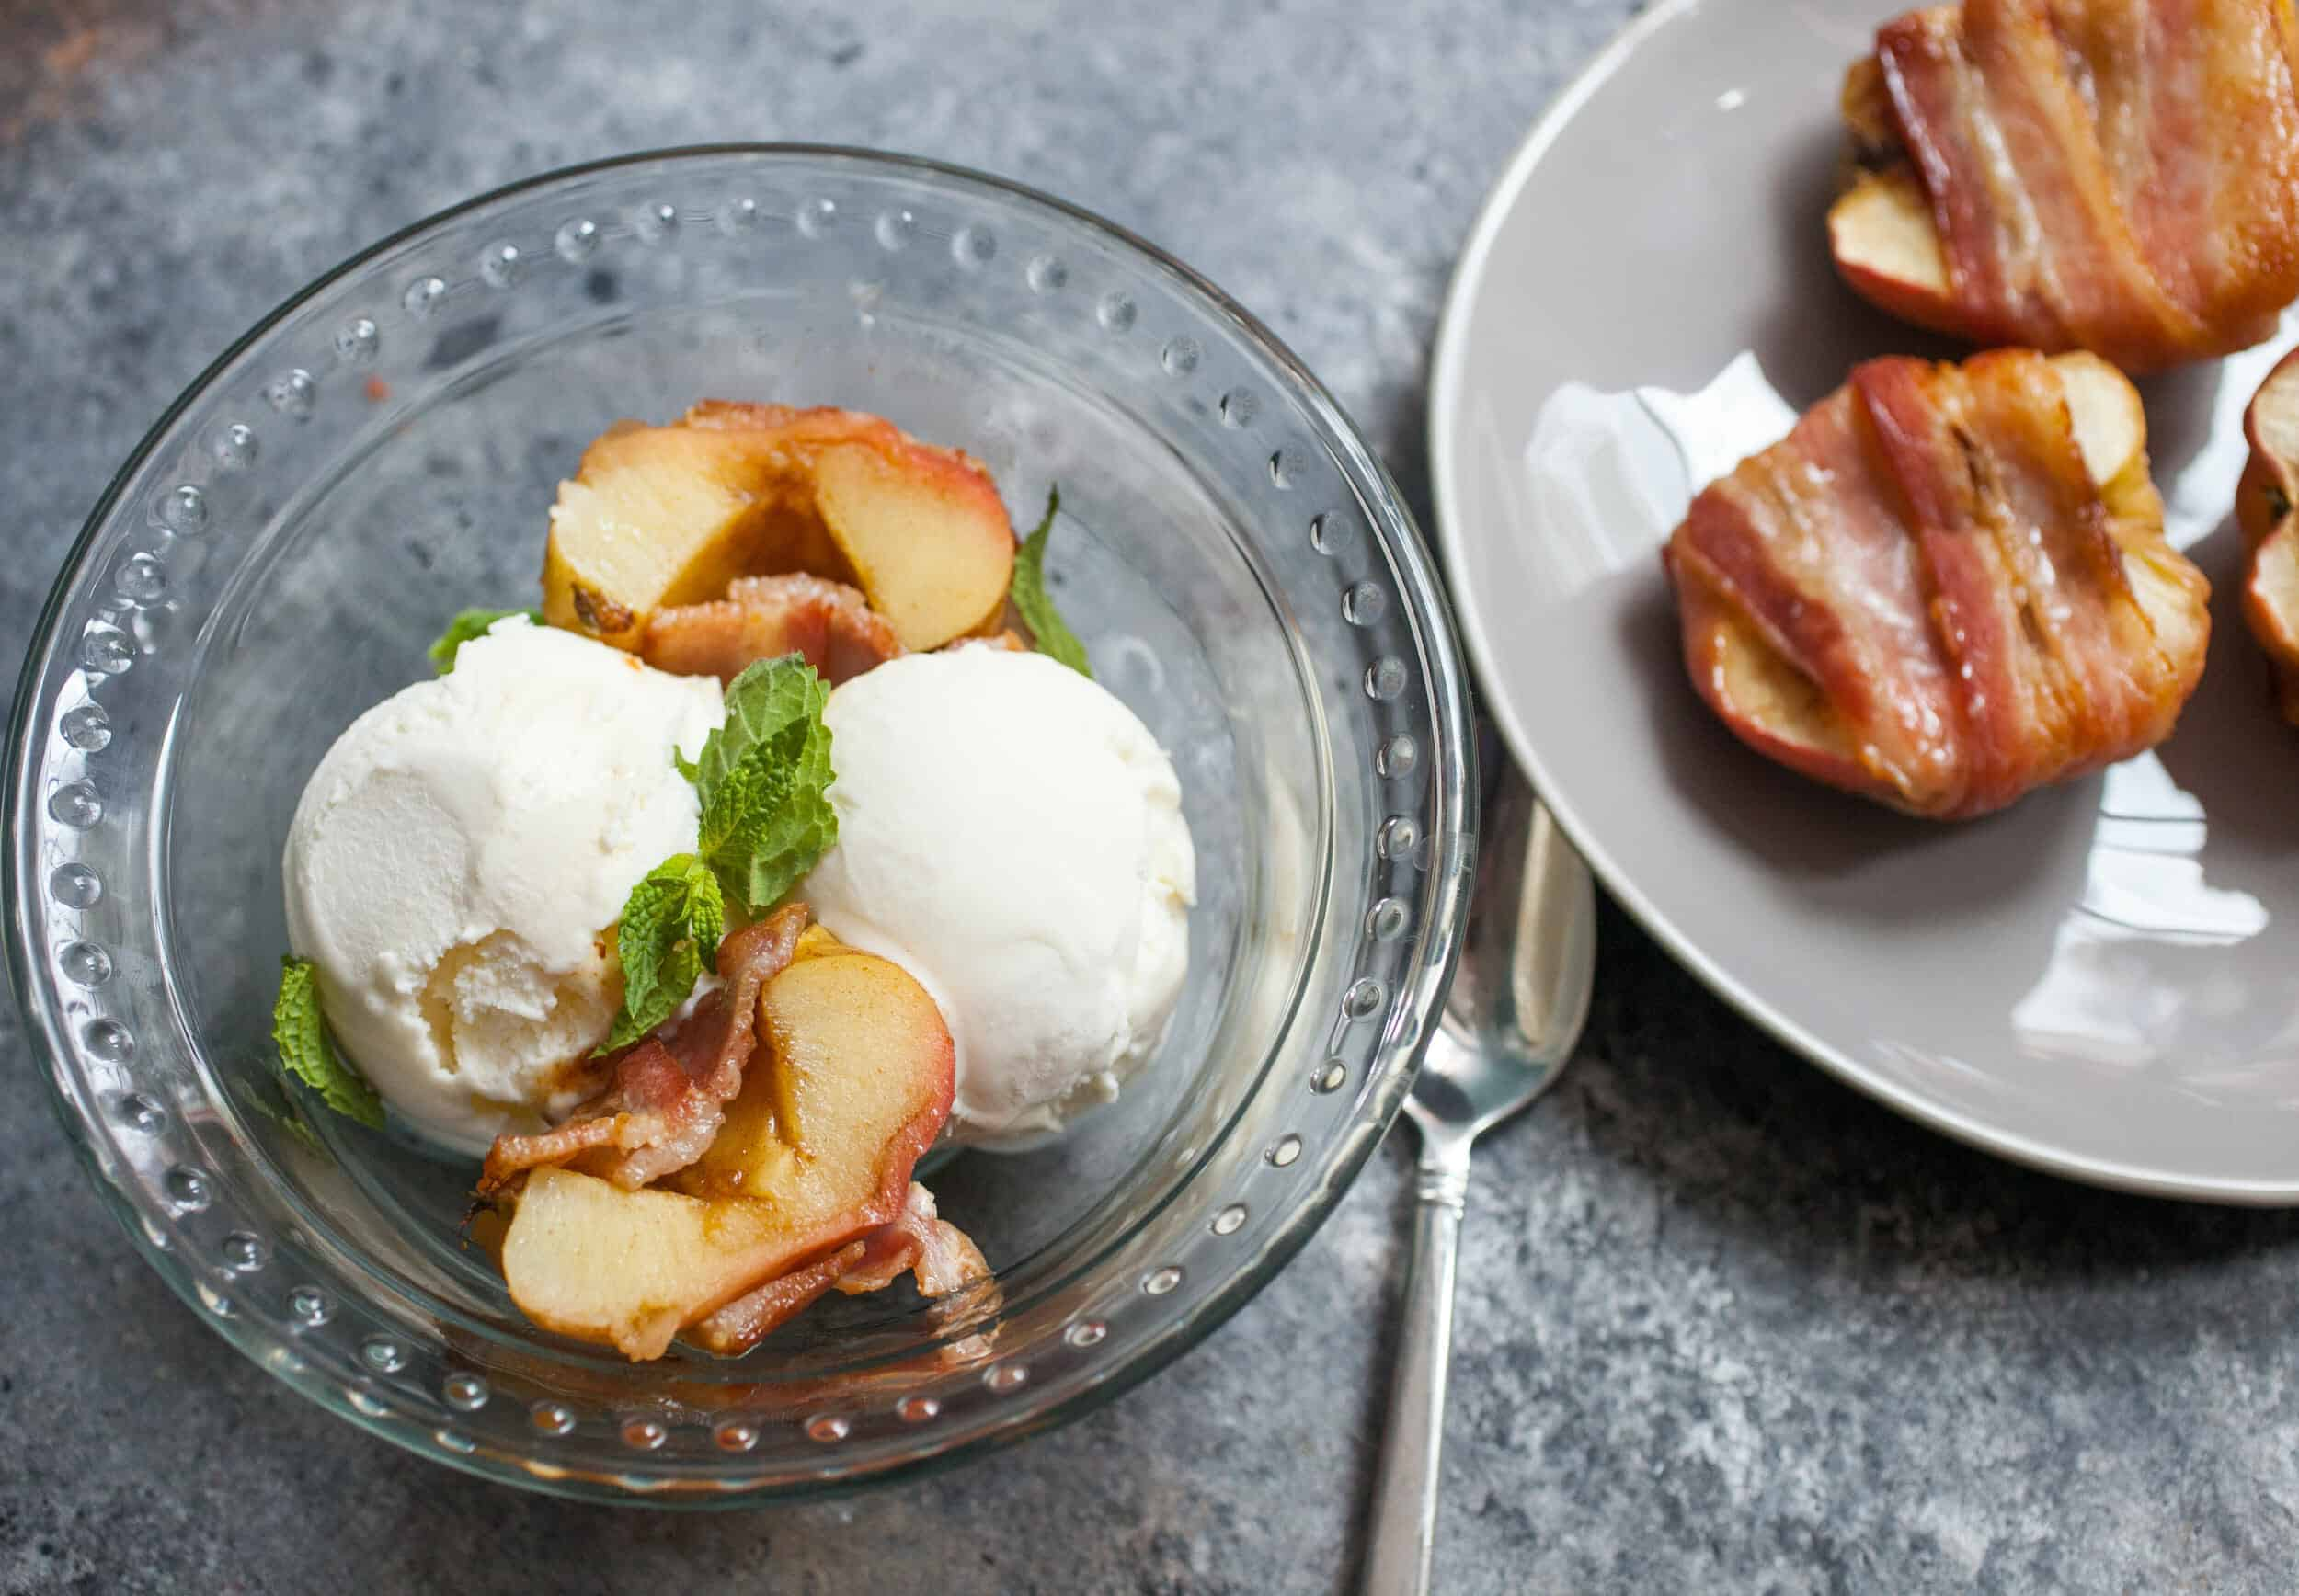 Bacon Wrapped Baked Apples: A slightly savory twist on dessert. Apples stuffed with brown sugar and spices and baked wrapped with bacon. HINT: Serve it with ice cream. YUP. | macheesmo.com